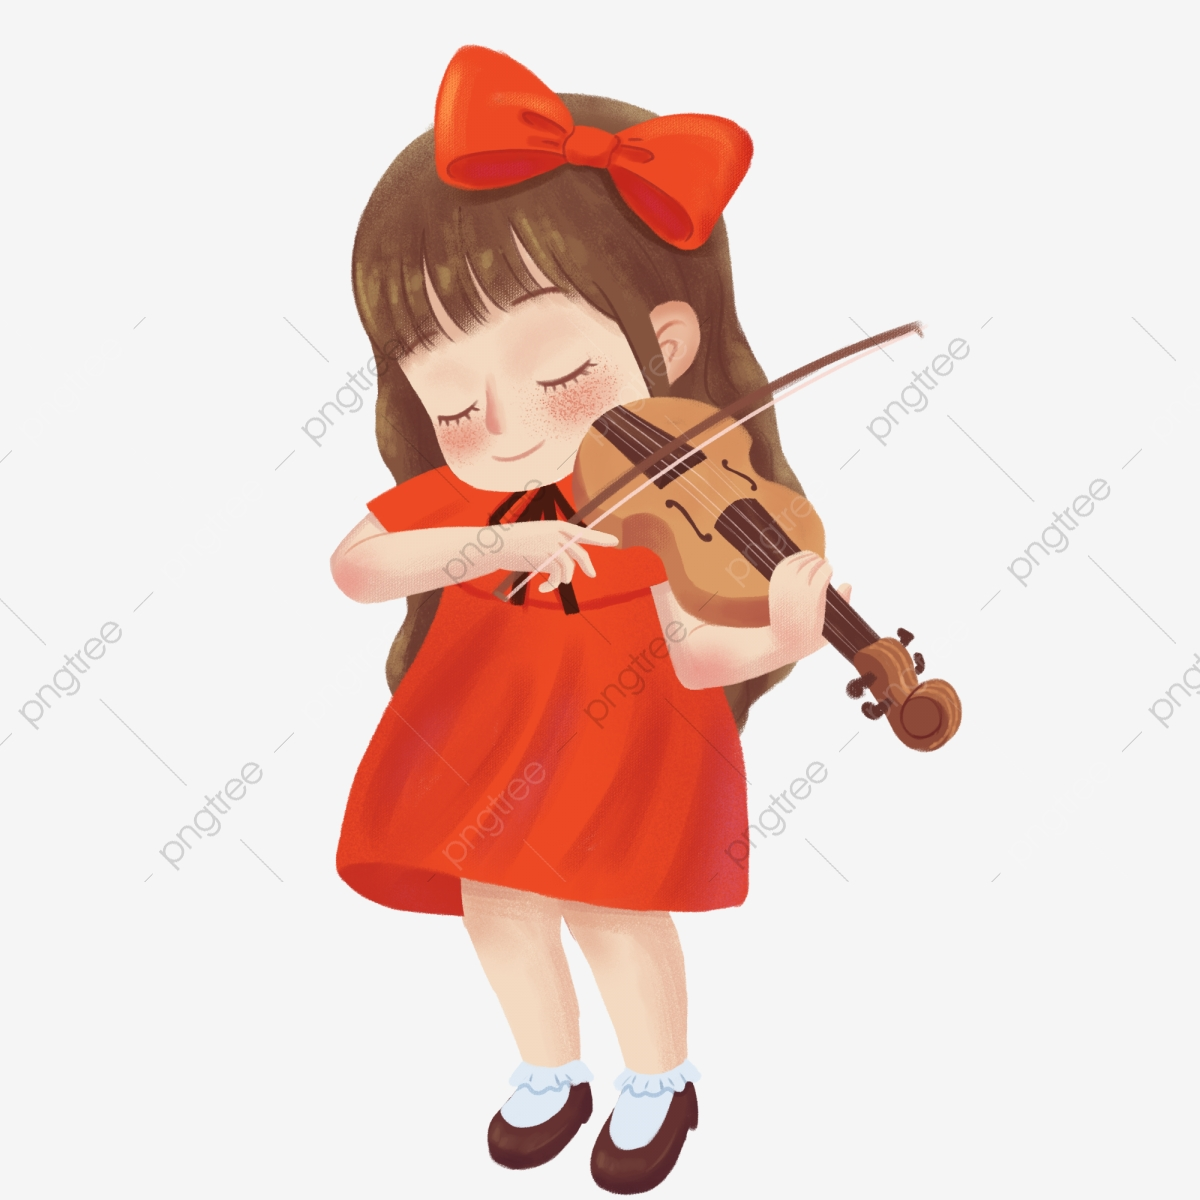 pngtree-cartoon-cute-girl-playing-violin-element-instrumentbowreddesign-element-png-image_4037099